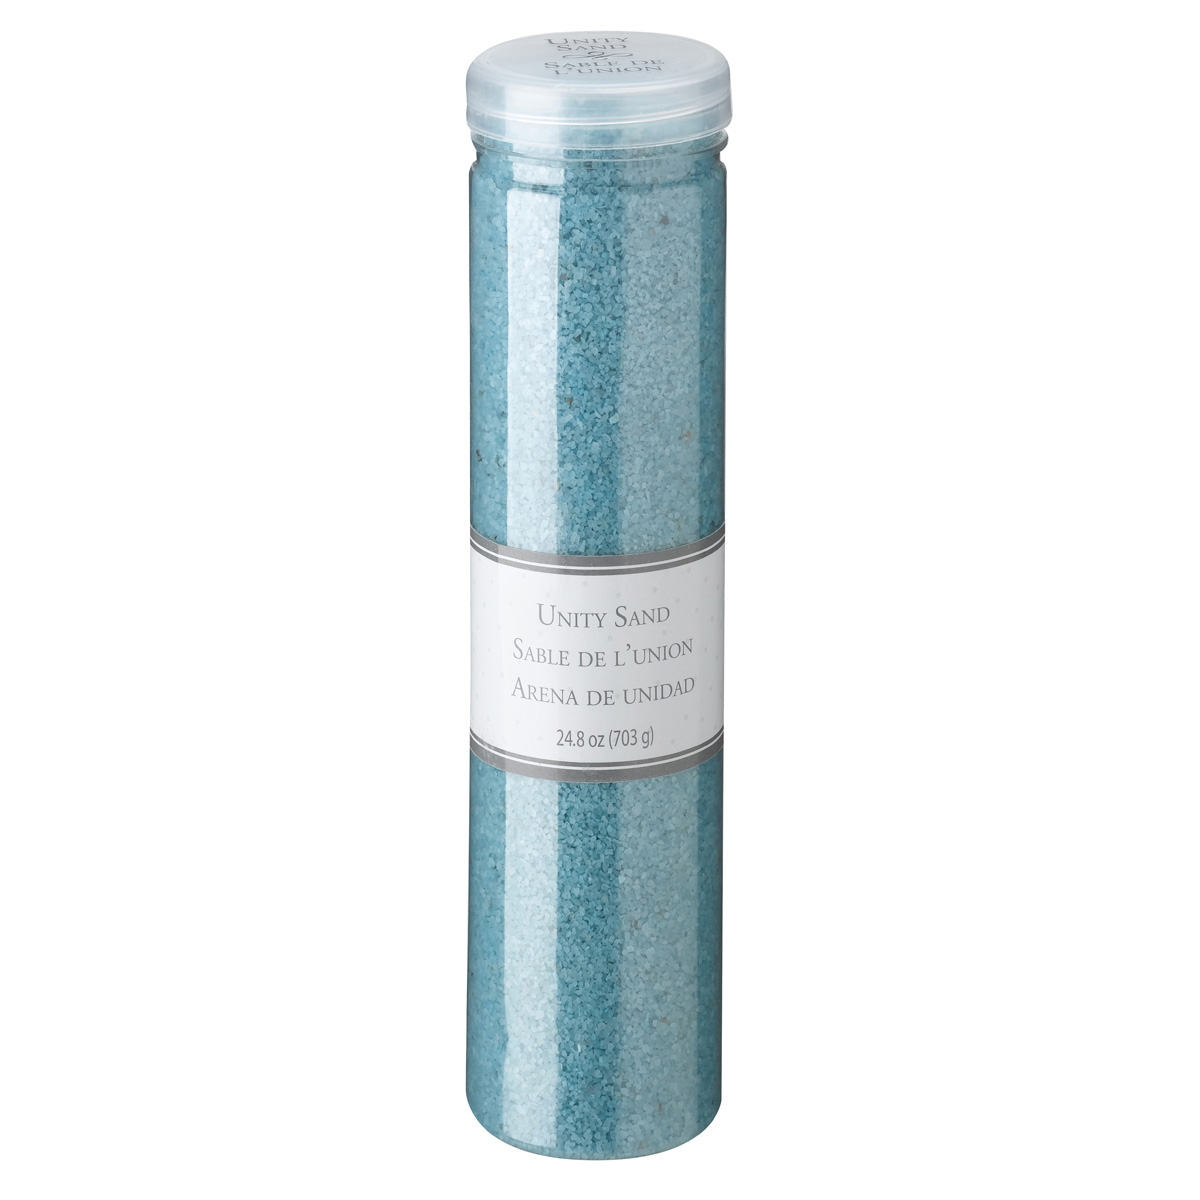 Lillian Rose Unity Sand, Turquoise, In Package